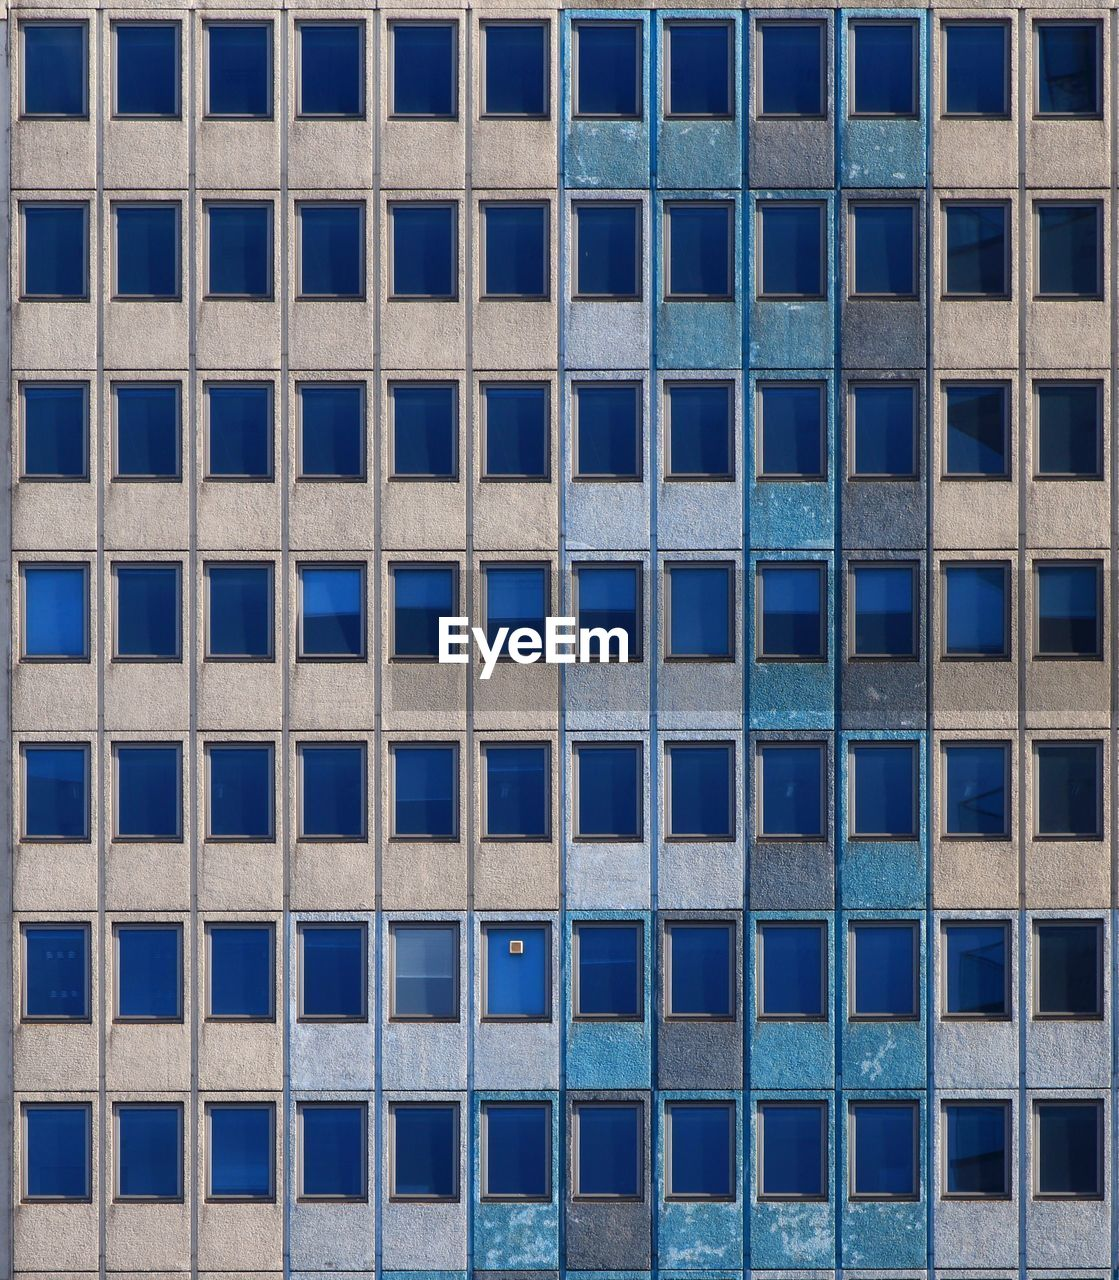 architecture, full frame, built structure, backgrounds, building exterior, building, window, city, no people, pattern, in a row, day, modern, office building exterior, repetition, side by side, blue, outdoors, office, glass - material